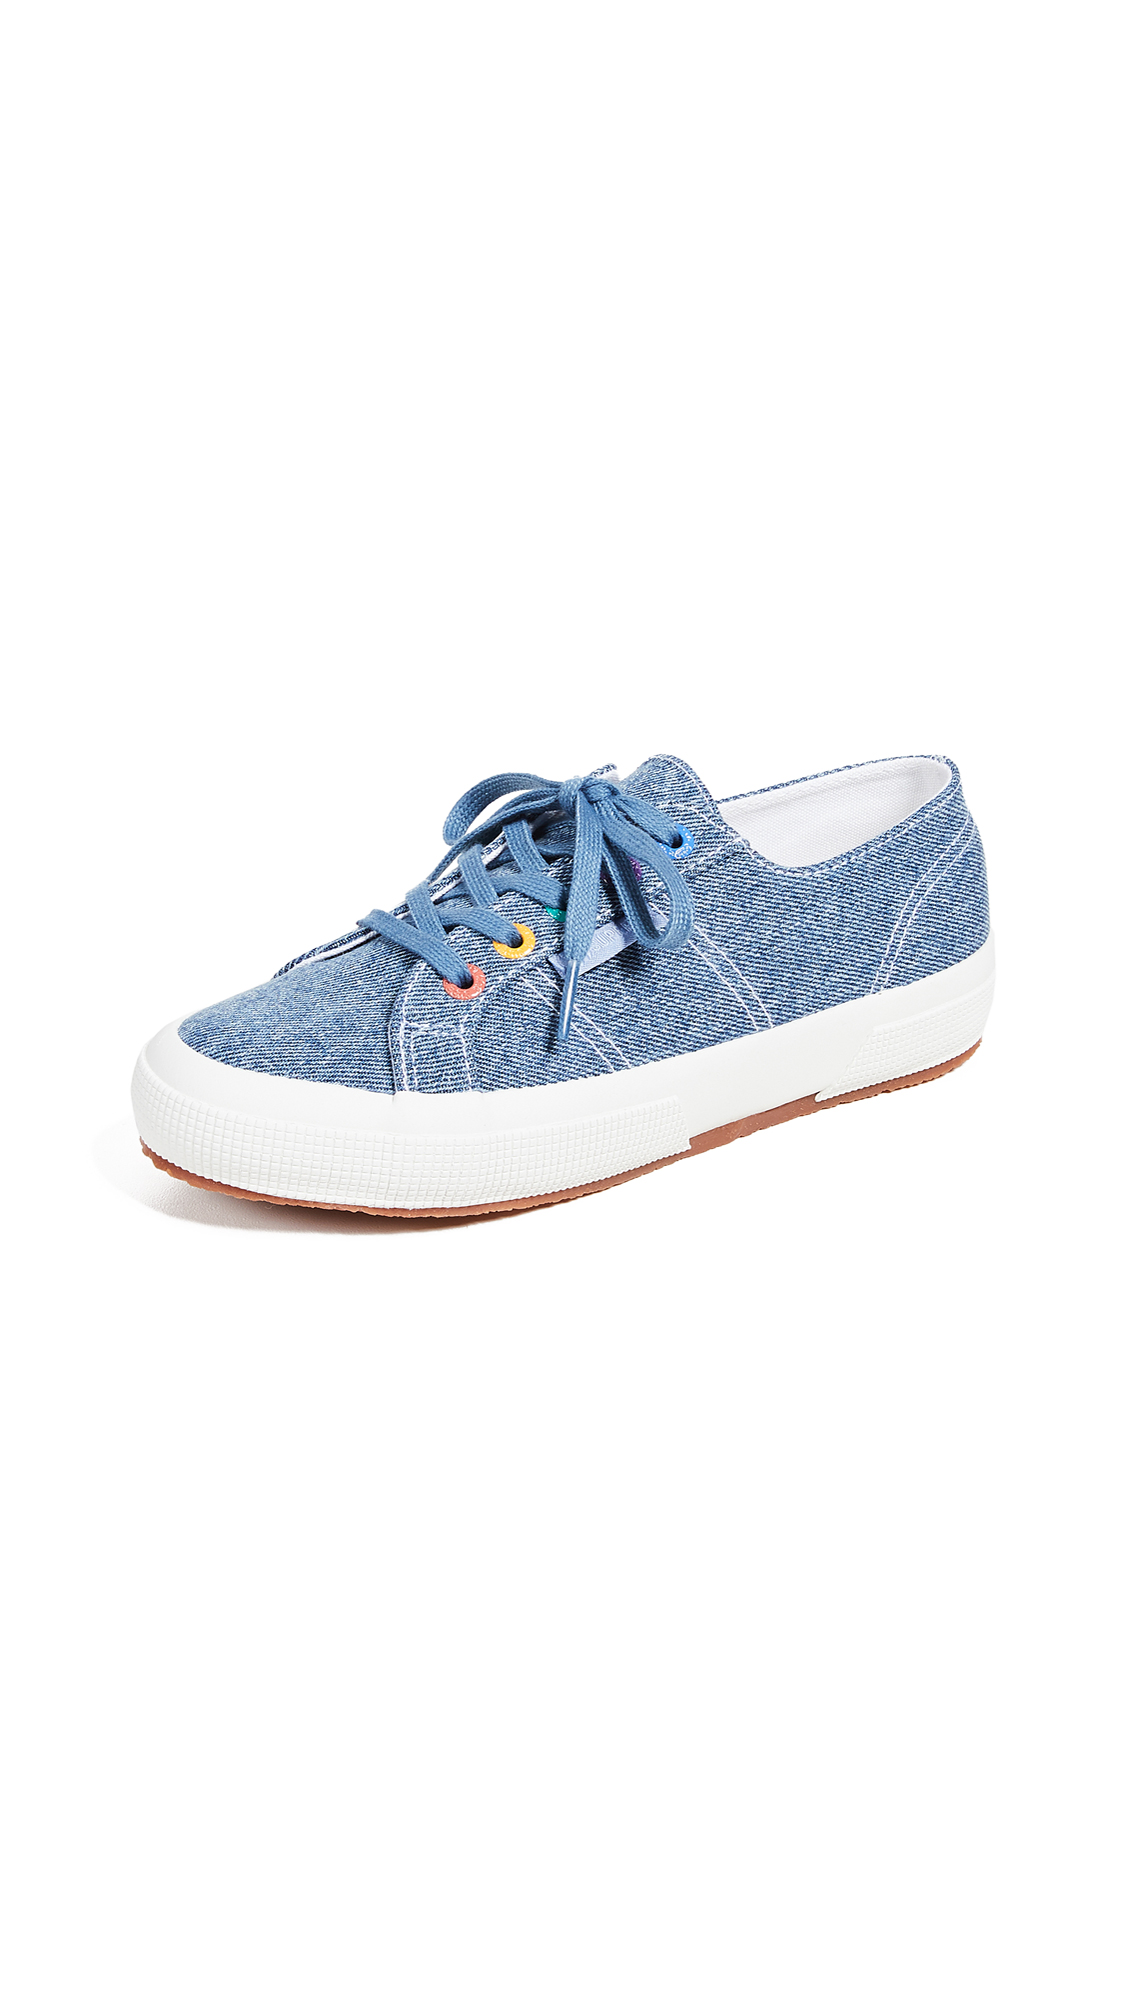 Superga 2750 Denim Sneakers - Denim Multi